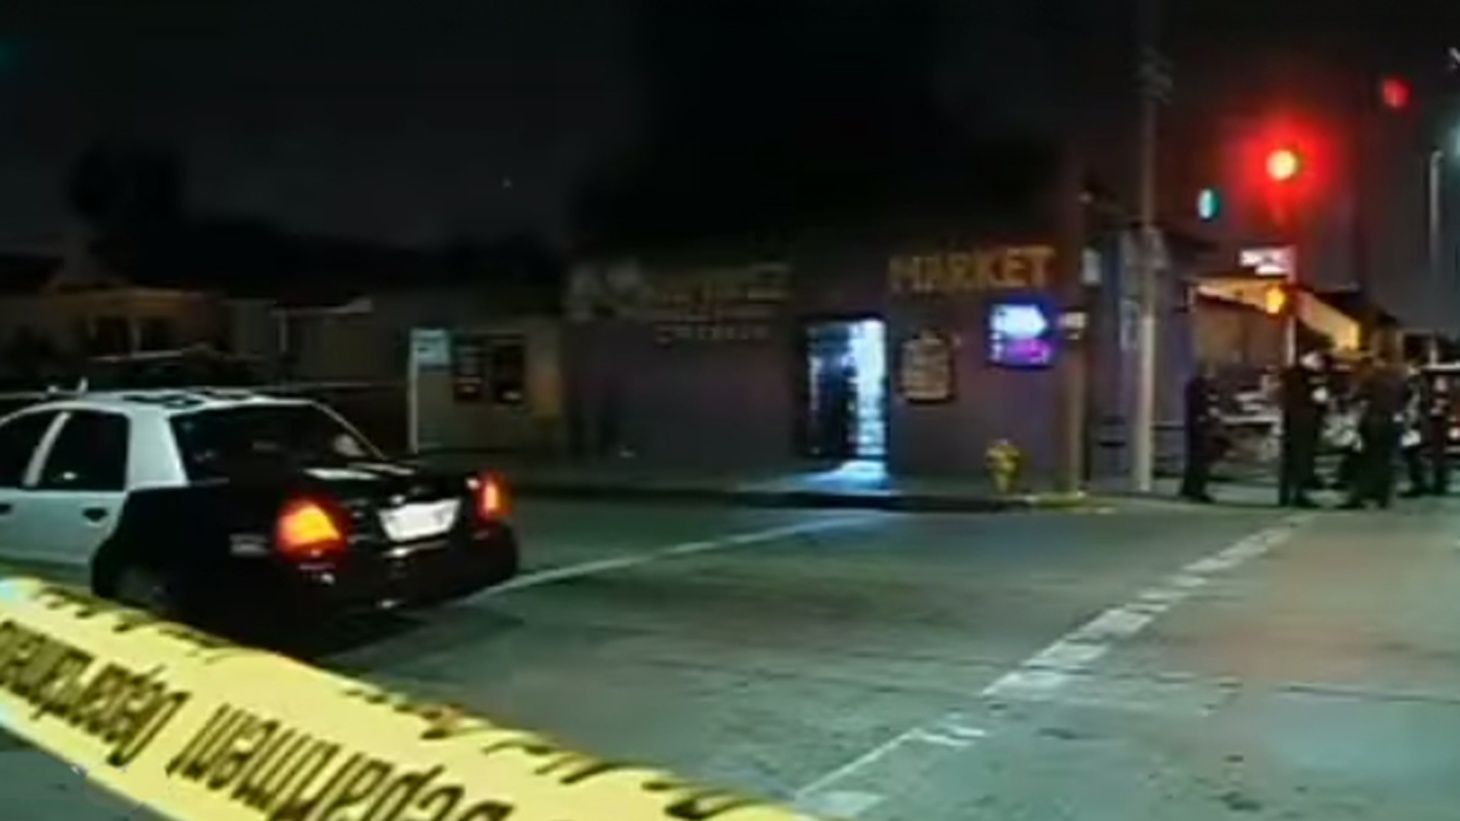 """Violent crime, including murder, is on the increase in South Los Angeles after almost a decade of steady decline. Yesterday, an """"emergency meeting"""" was packed with elected officials, cops, activists and residents -- including survivors and victims' relatives. What new resources are required, compared to what's available?"""